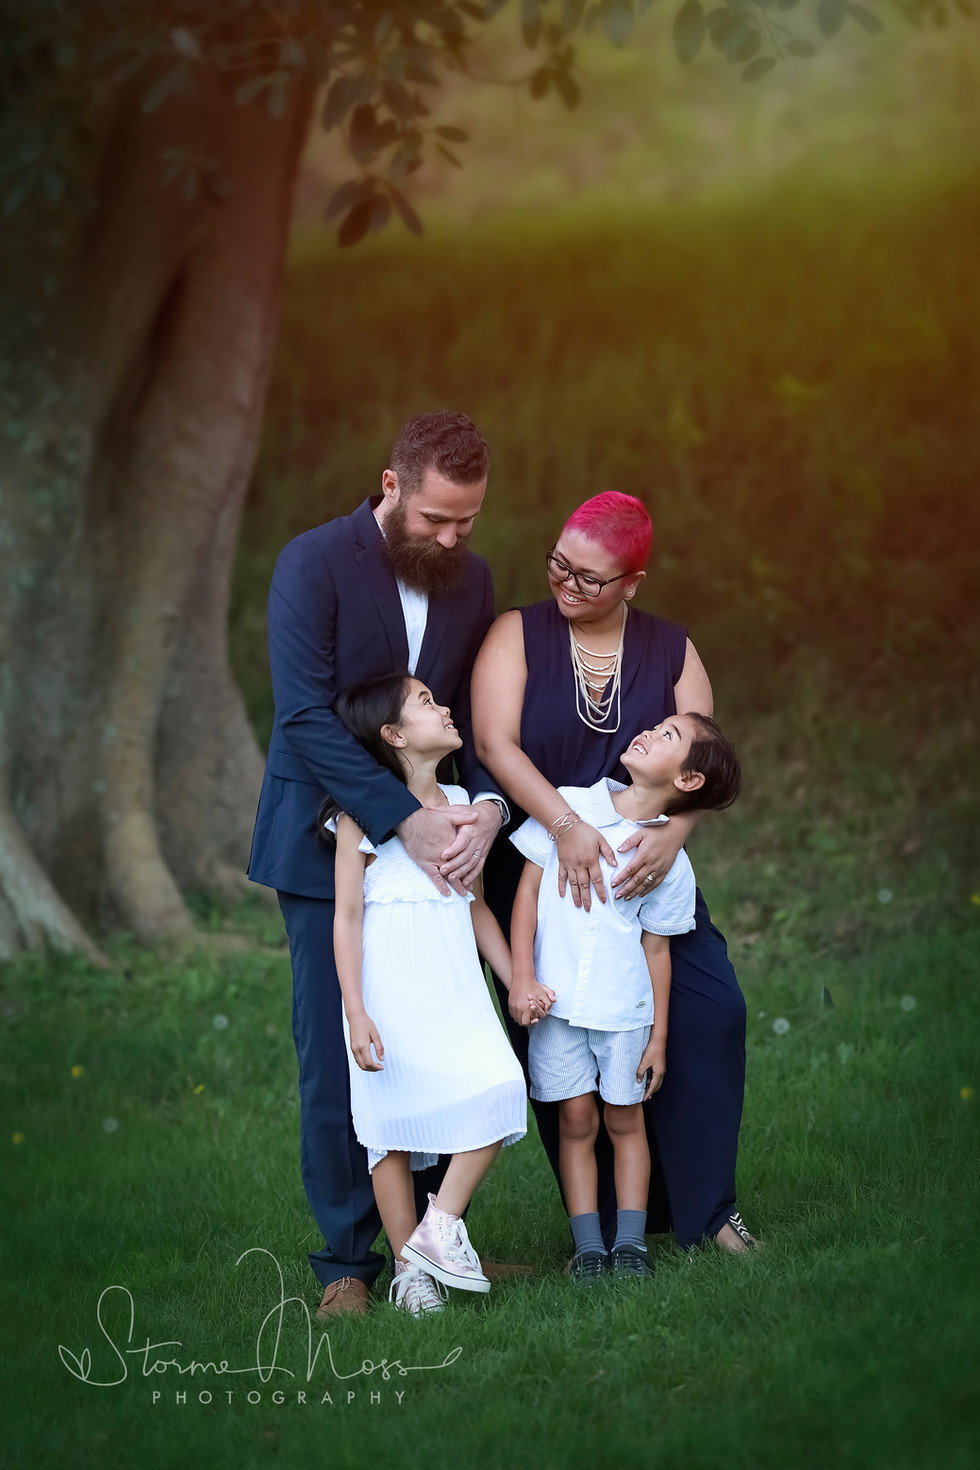 Family outdoors photography